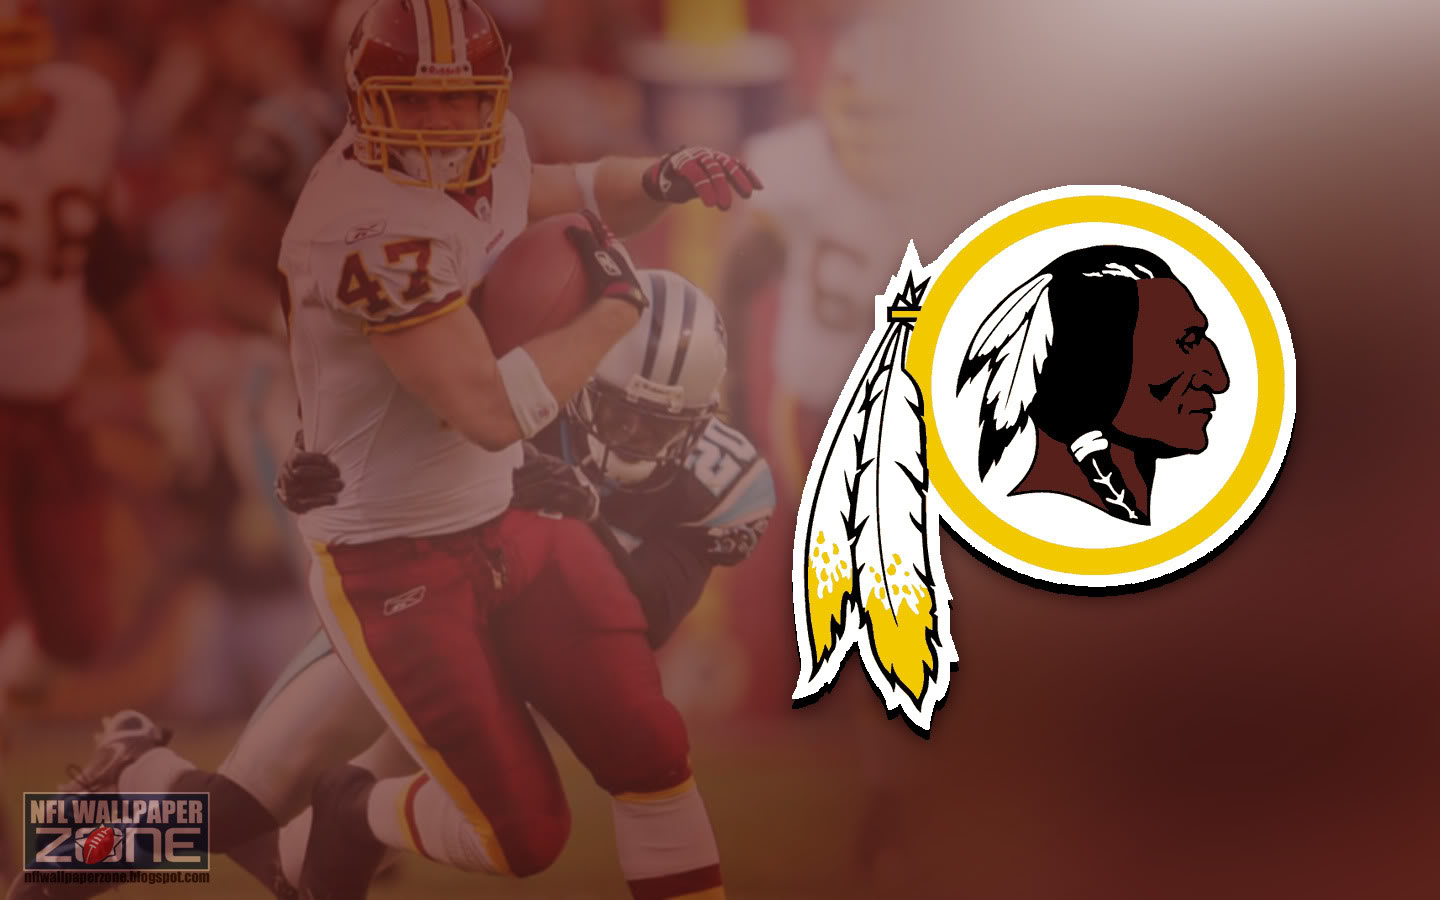 Funny Redskins Photos http://www.picturefans.com/washington-redskins-photos/